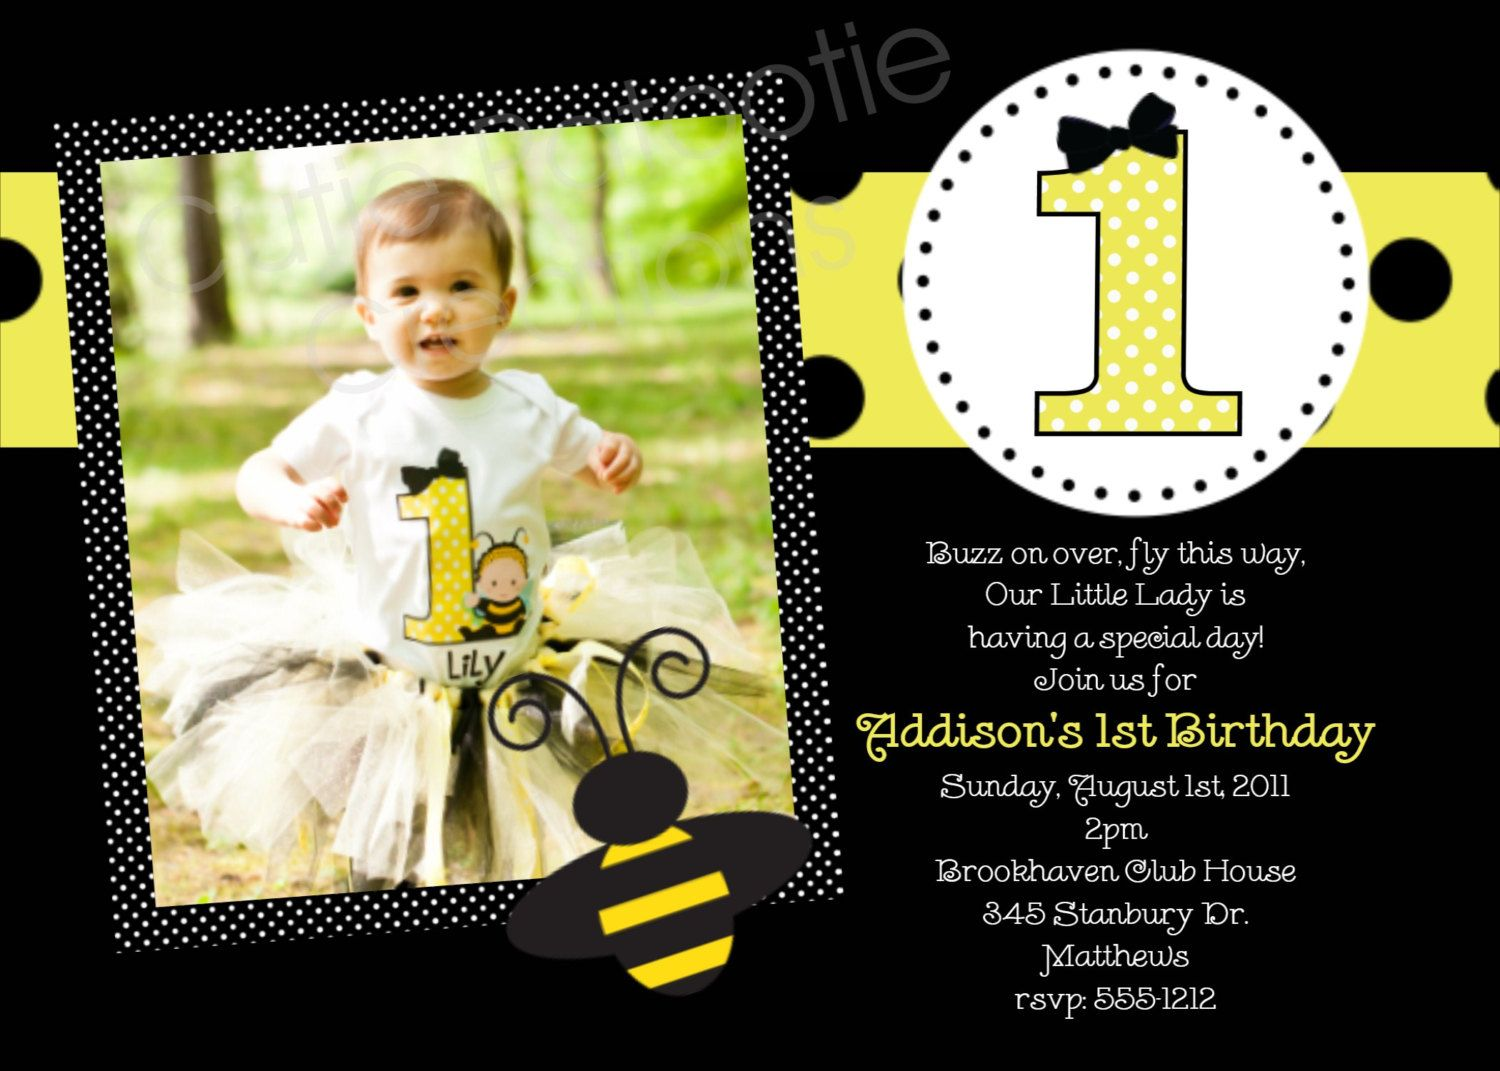 Bumble bee birthday party invitations printable or printed bumble bee birthday invitation bumble bee by cutiestiedyeboutique filmwisefo Images